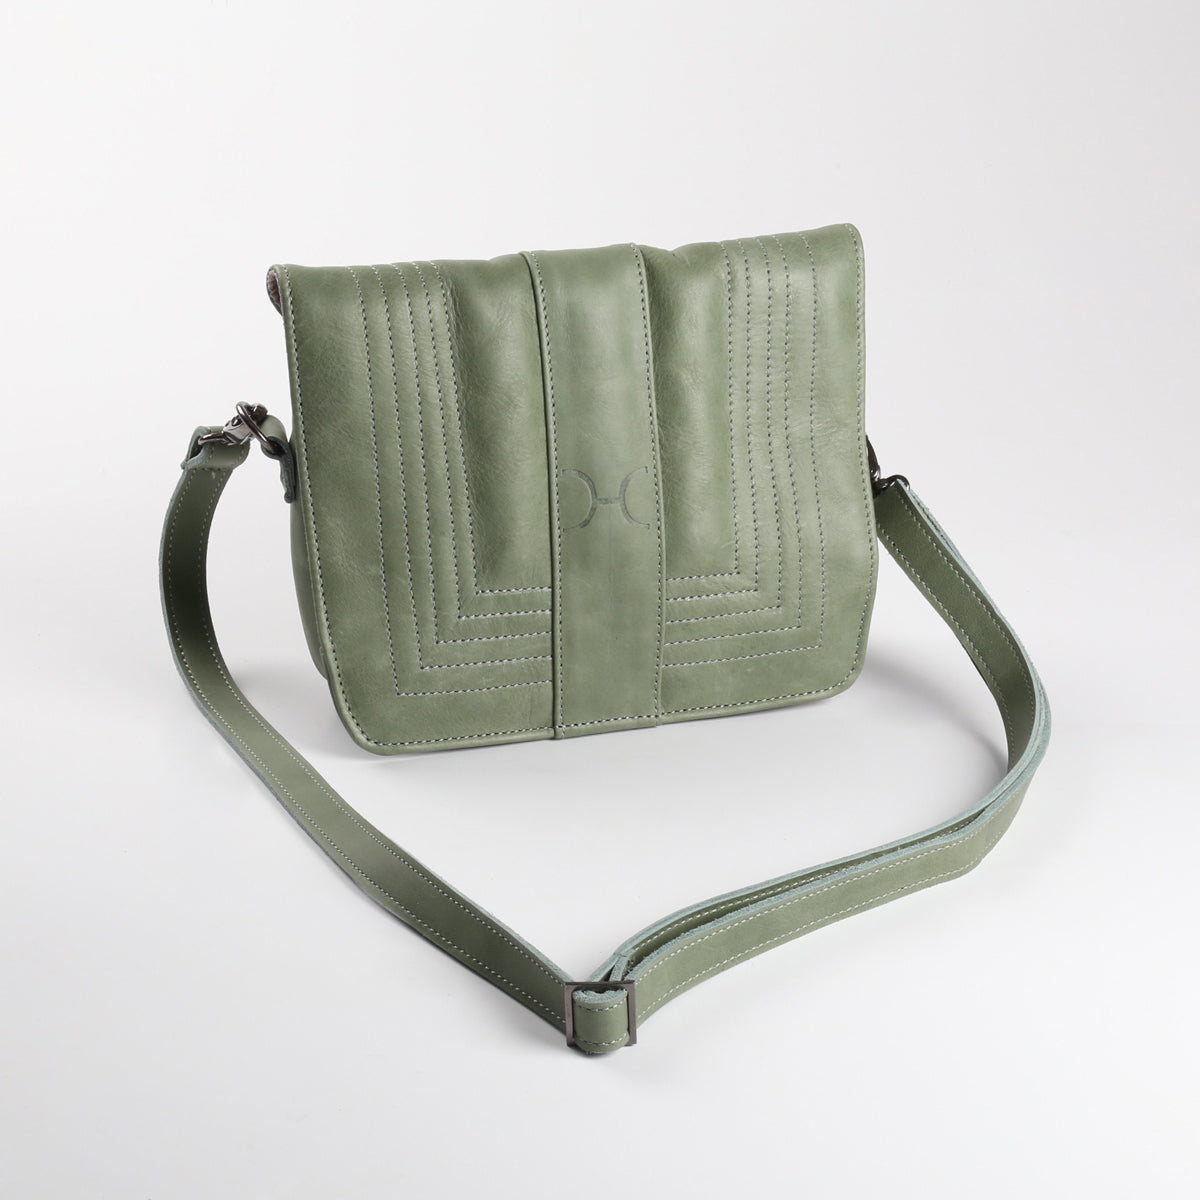 Thandana Katy Sling - Green - Zufrique Boutique